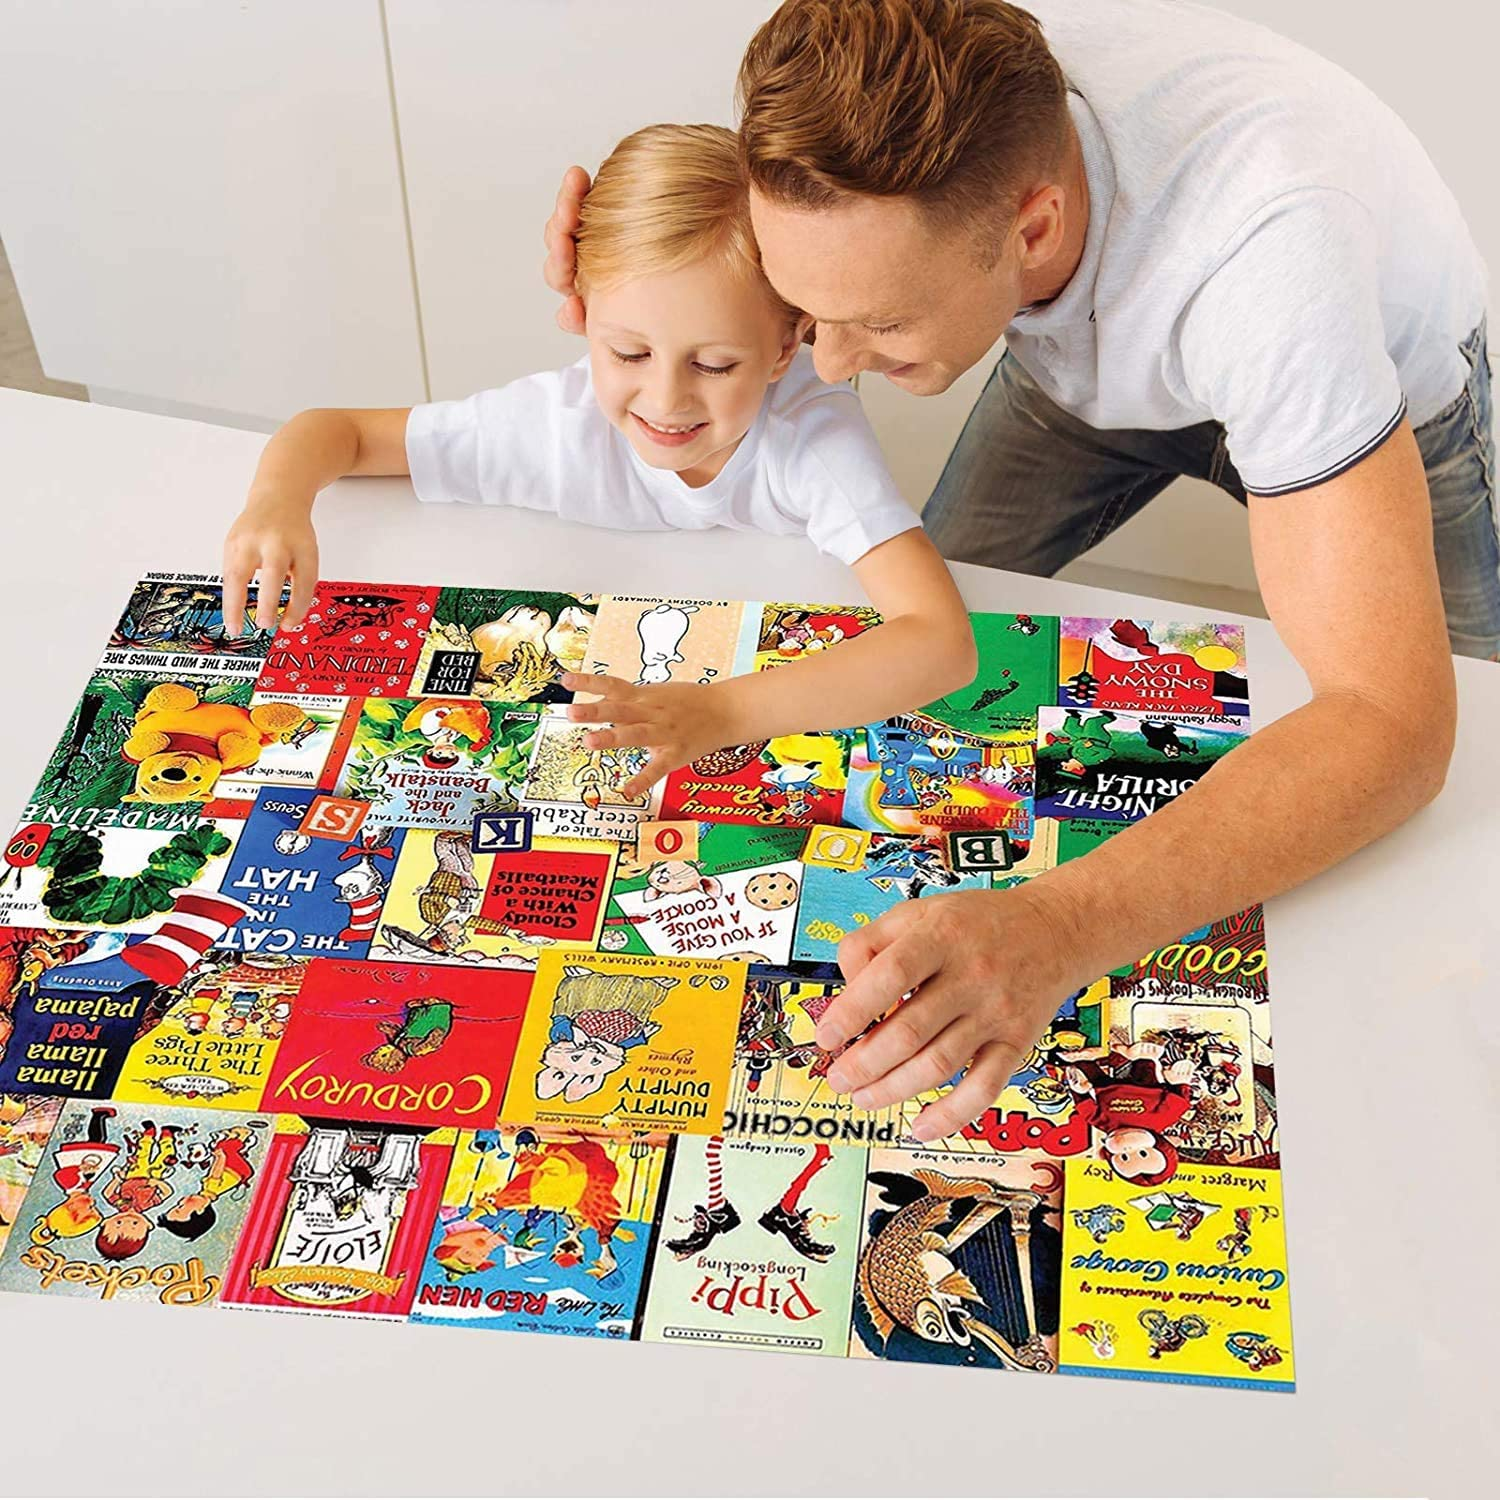 Adult Jigsaw Puzzle 1000 Pieces Story time Jigsaw Puzzle Tangram Puzzle Large Jigsaw Puzzle Game for Adults and Teenagers Product Size 27.5X 19.6 inches